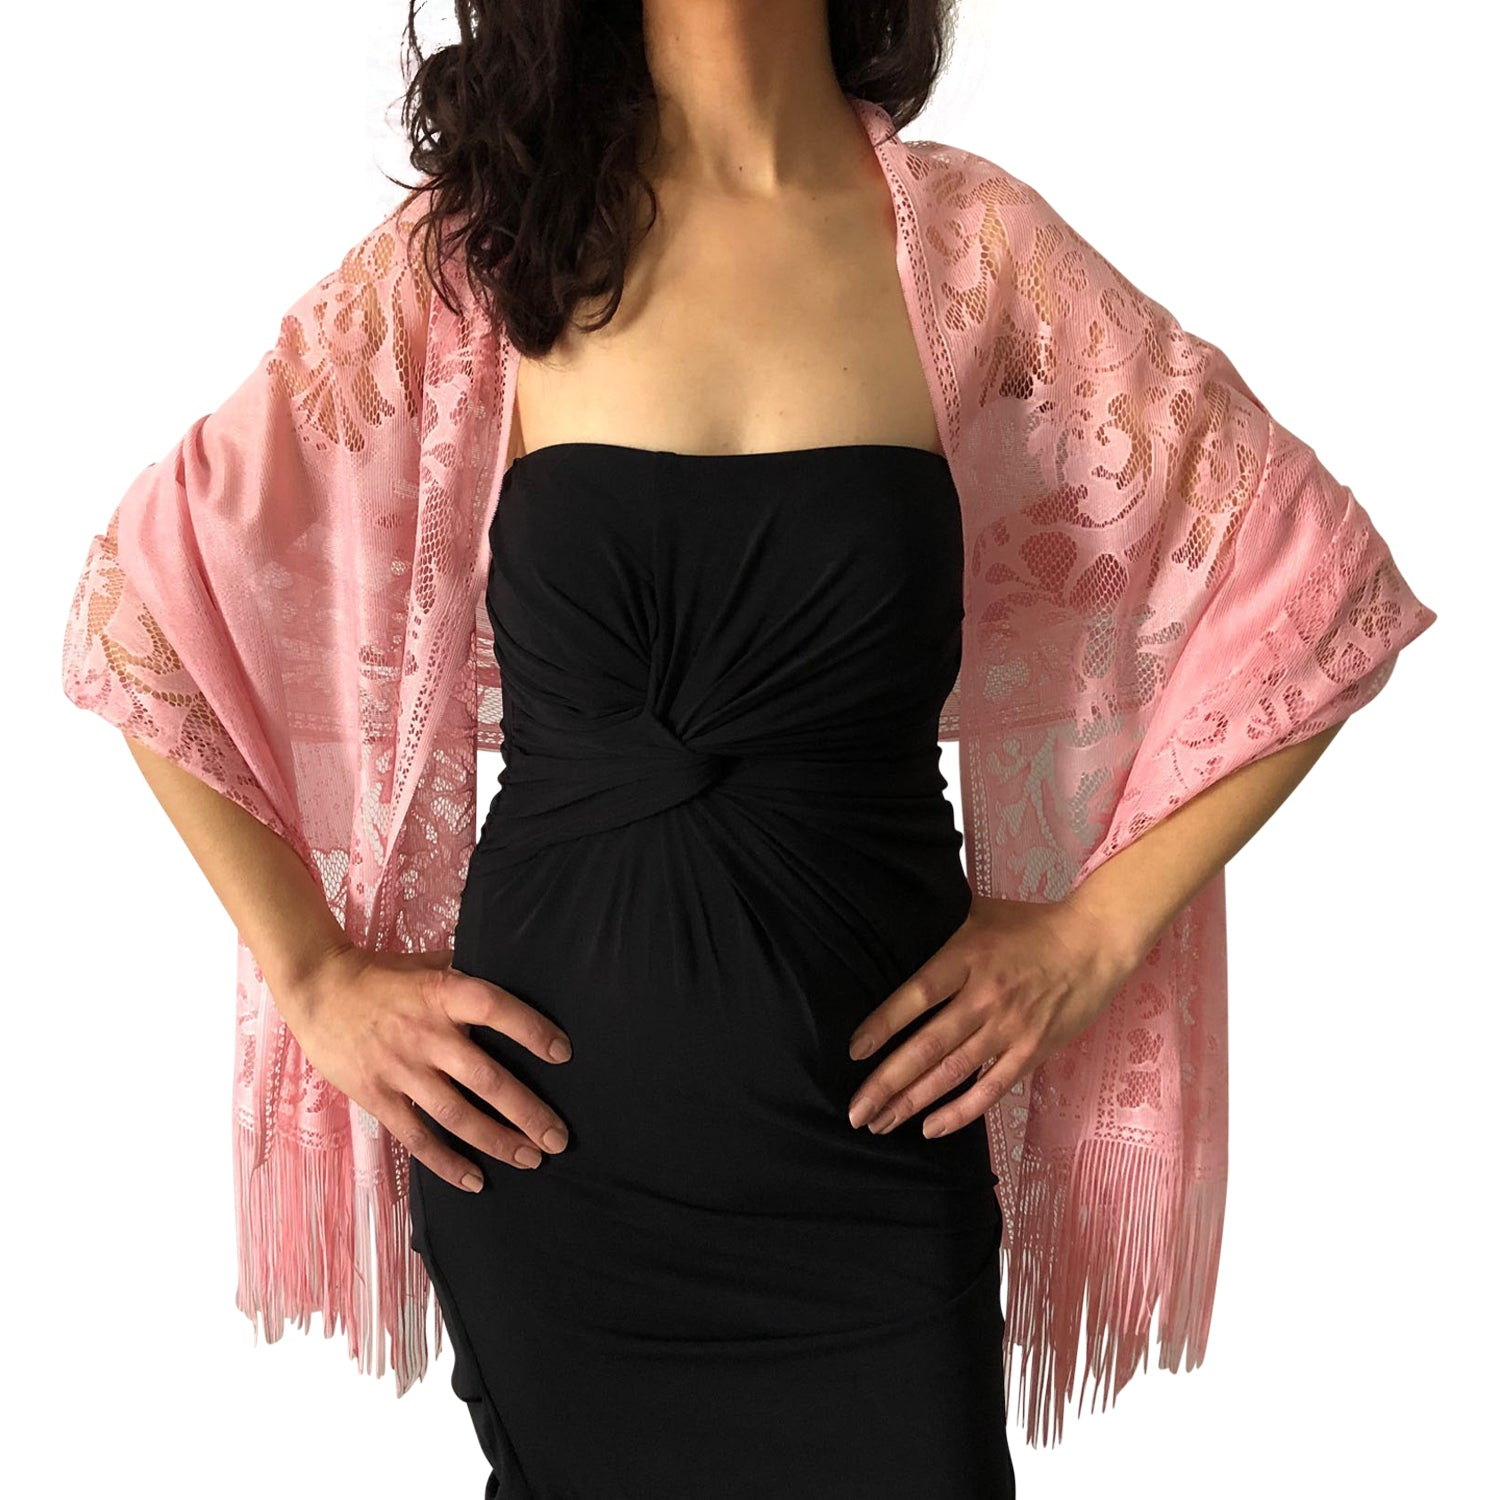 Pink Tulle Wedding Wrap Shawl Lace Pashmina Scarf Central Chic